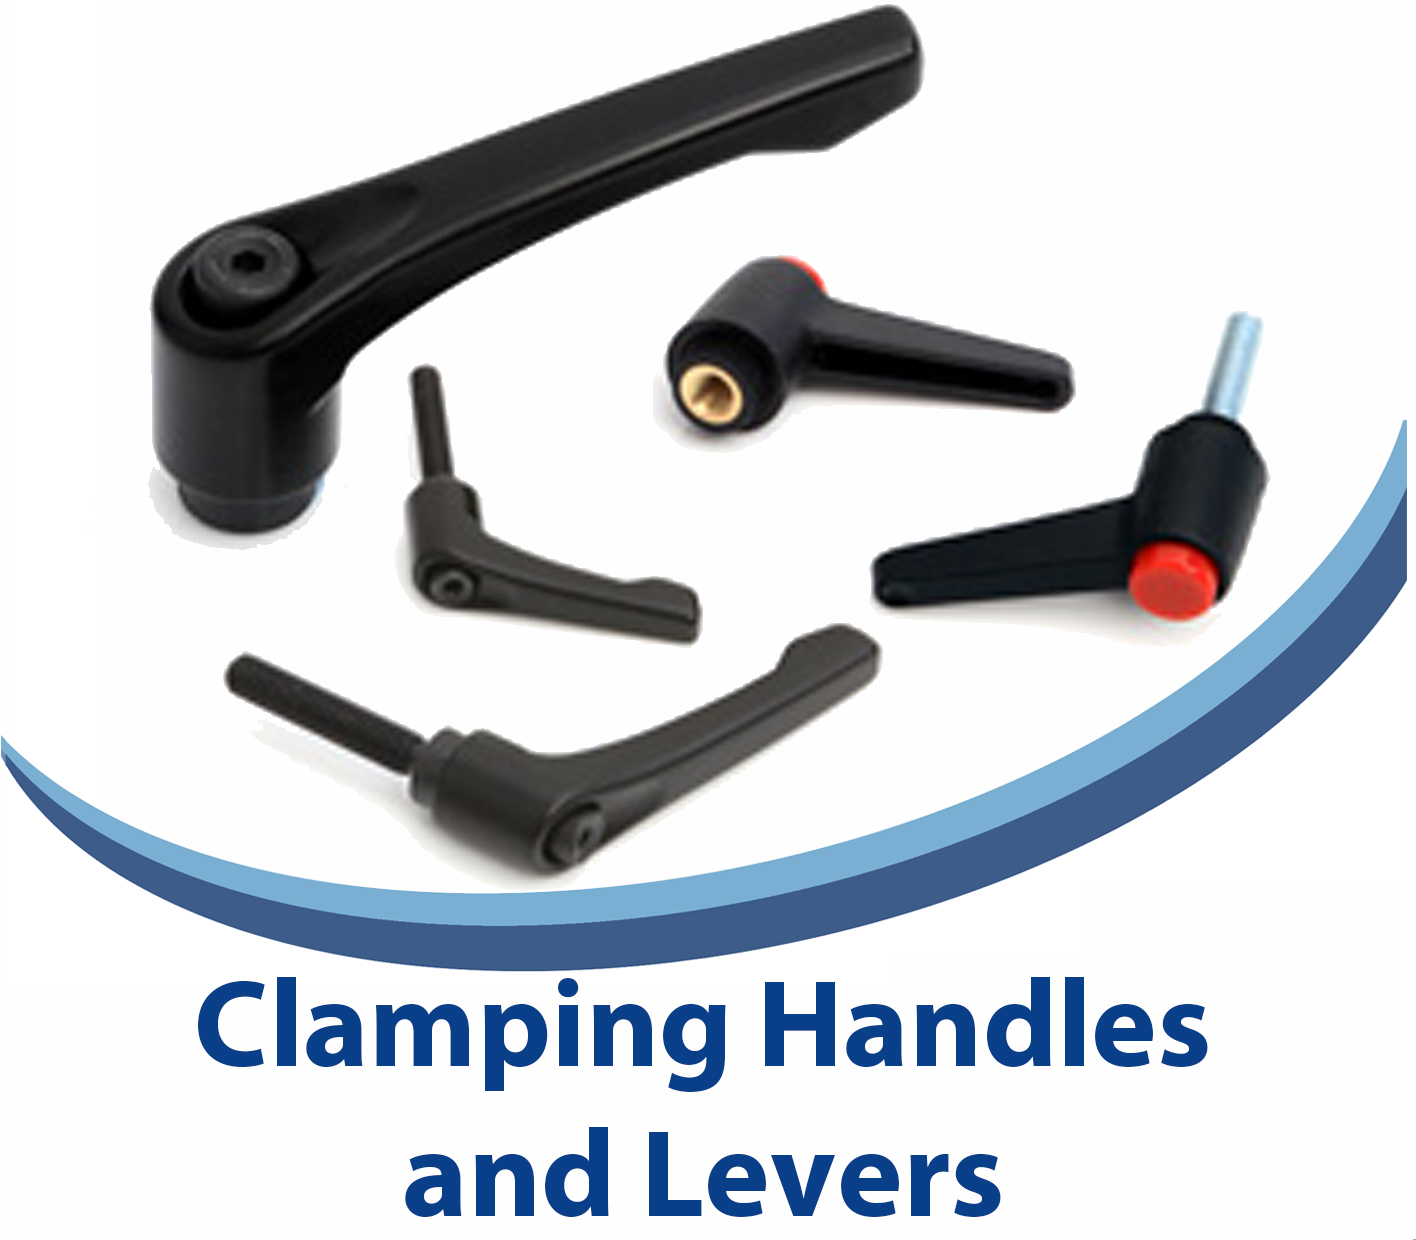 Clamping Handles and Levers